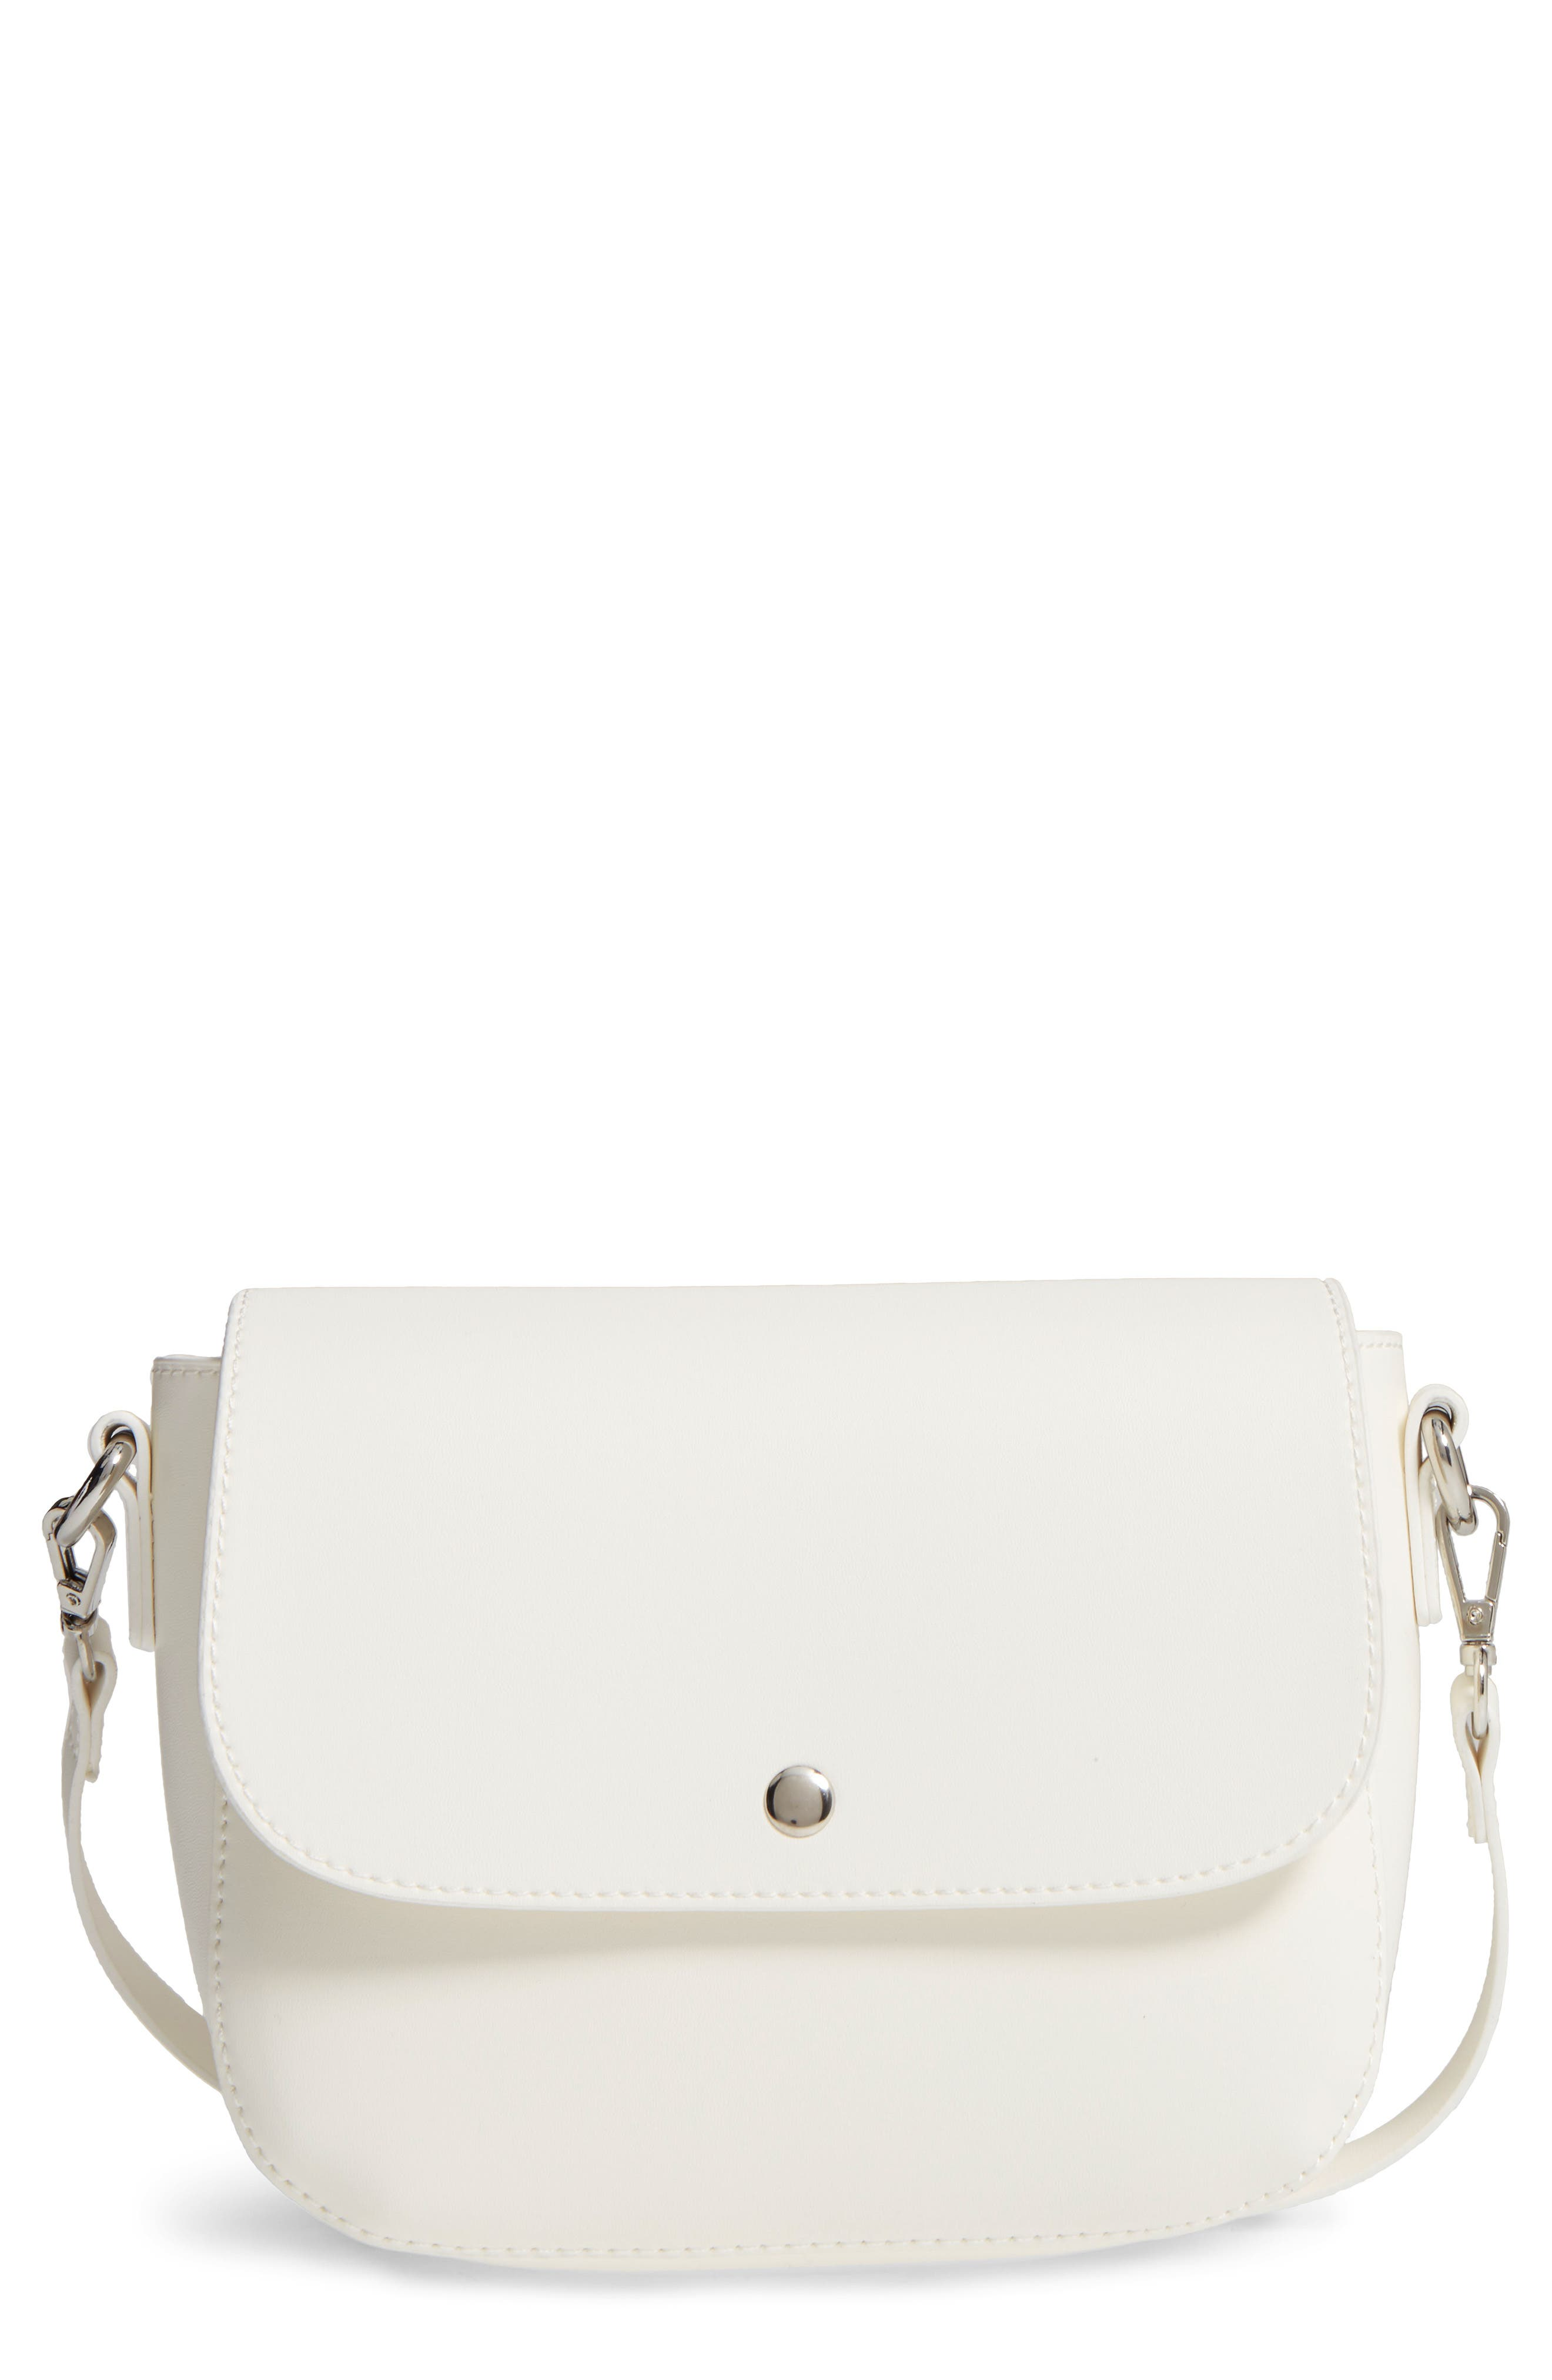 Alternate Image 1 Selected - BP. Minimal Faux Leather Crossbody Bag